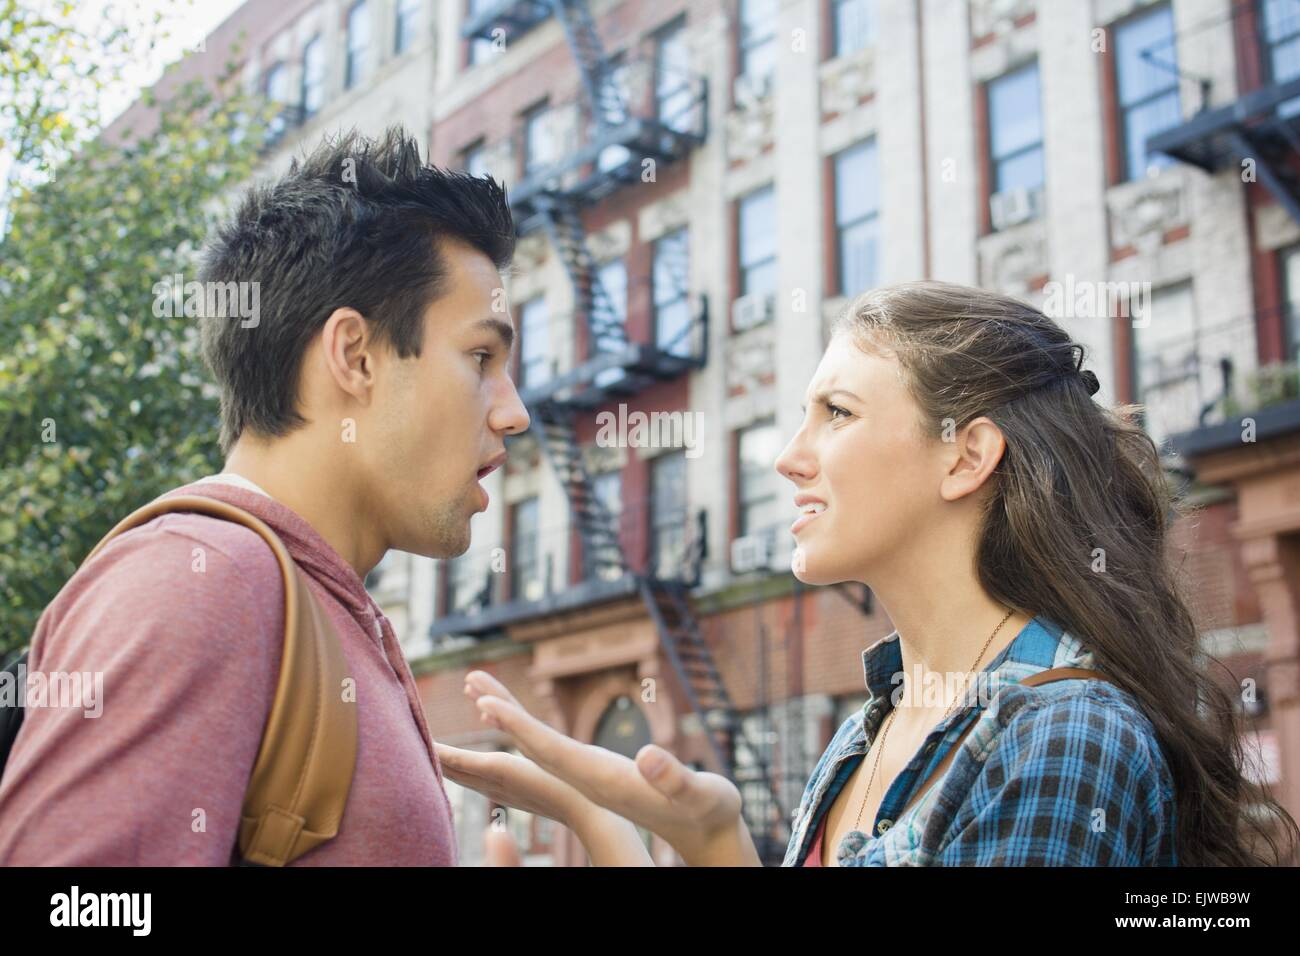 USA, New York State, New York City, Brooklyn, Young couple having relationship difficulties - Stock Image